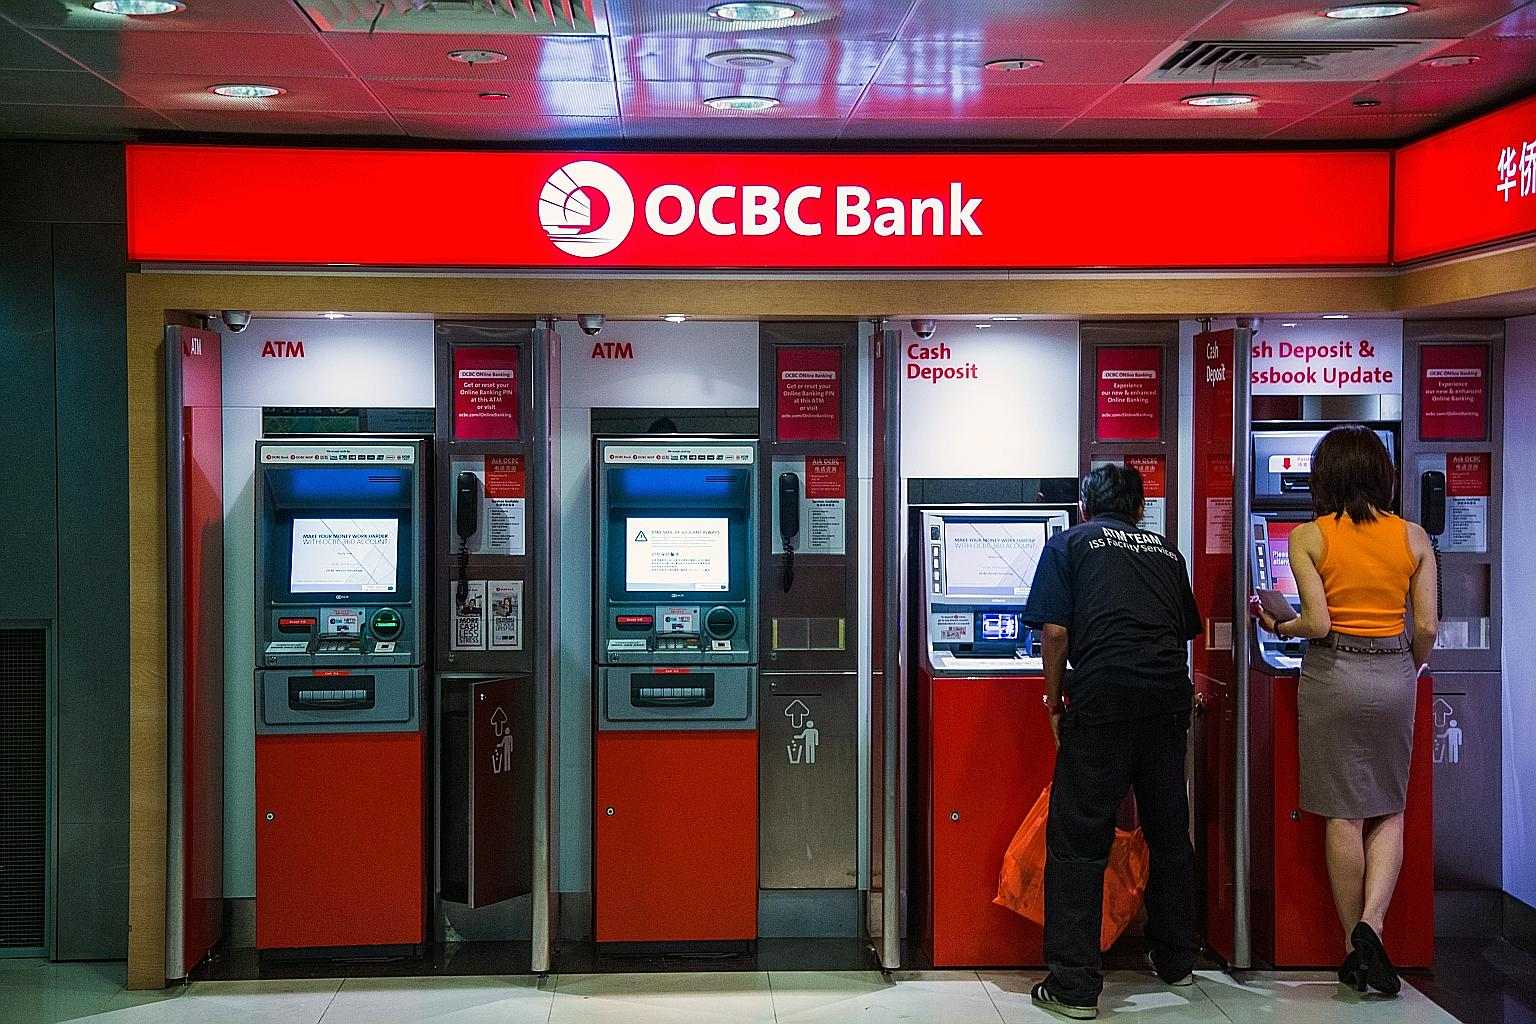 OCBC Enables Encashment of Cheques at ATMs | Retail News Asia